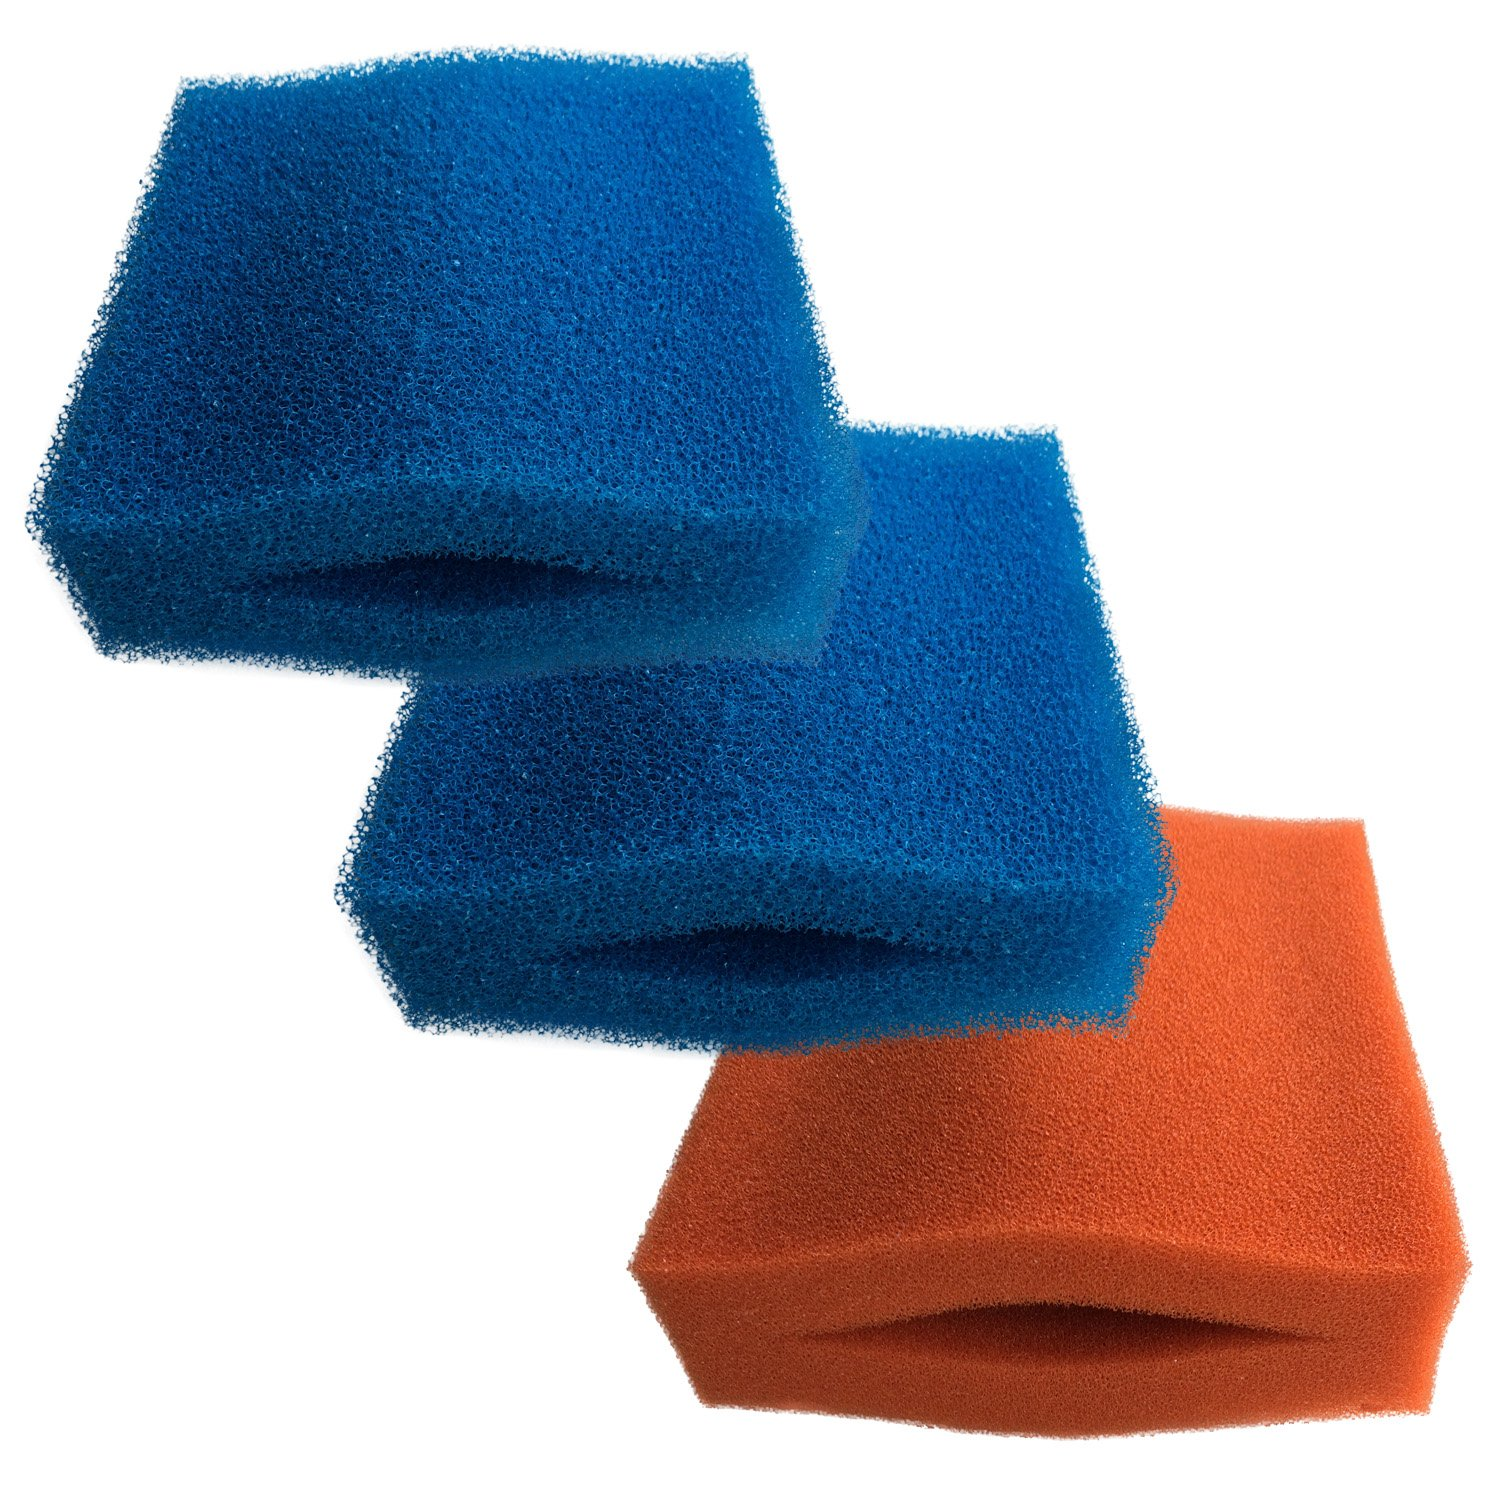 Finest-Filters Oase Biotec 5 10 30 Replacement Filter Foam Set (2 x bluee Coarse and 1 x Red Fine Foam)